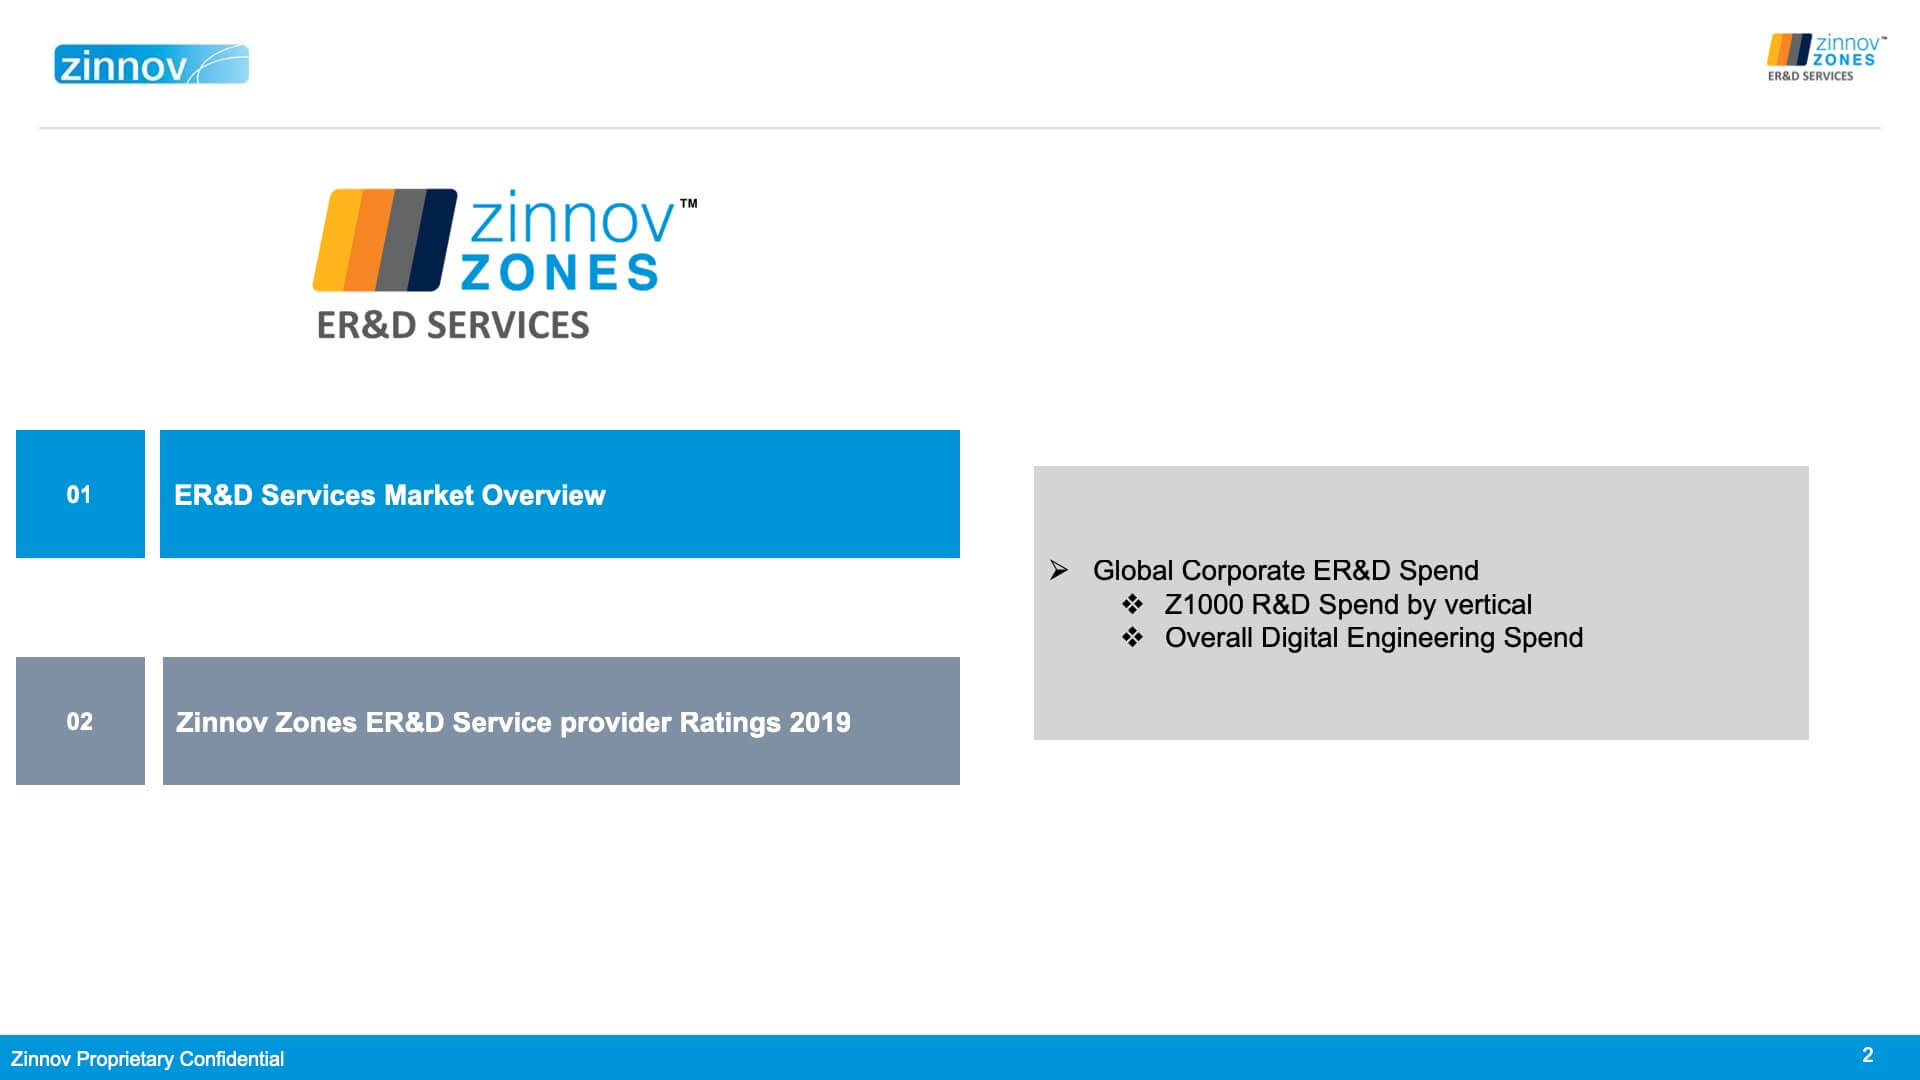 Zinnov Zones 2019 for Engineering R&D Services